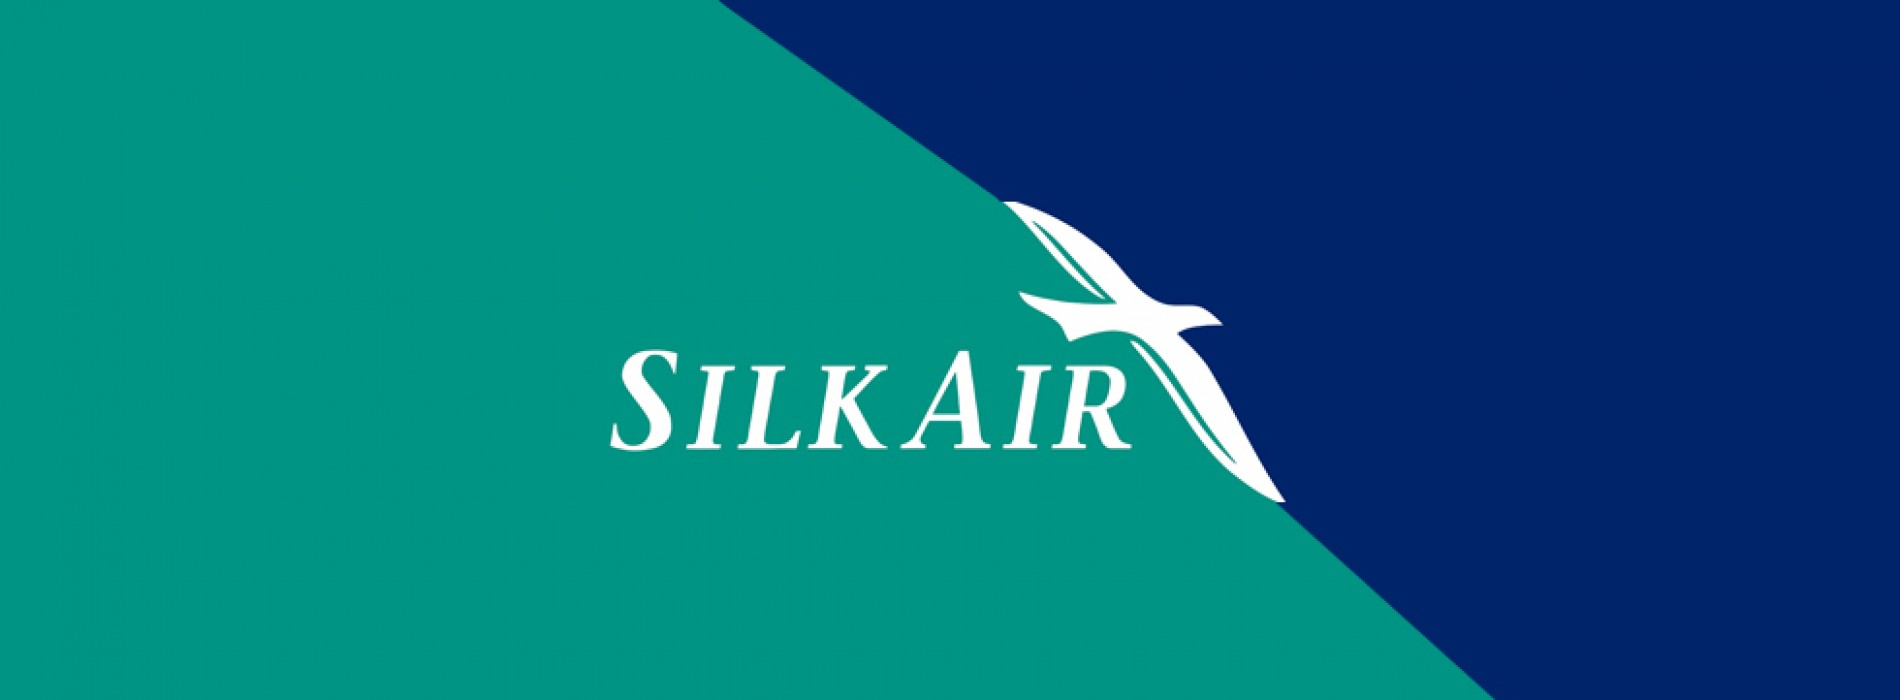 SilkAir announces New Year special fares